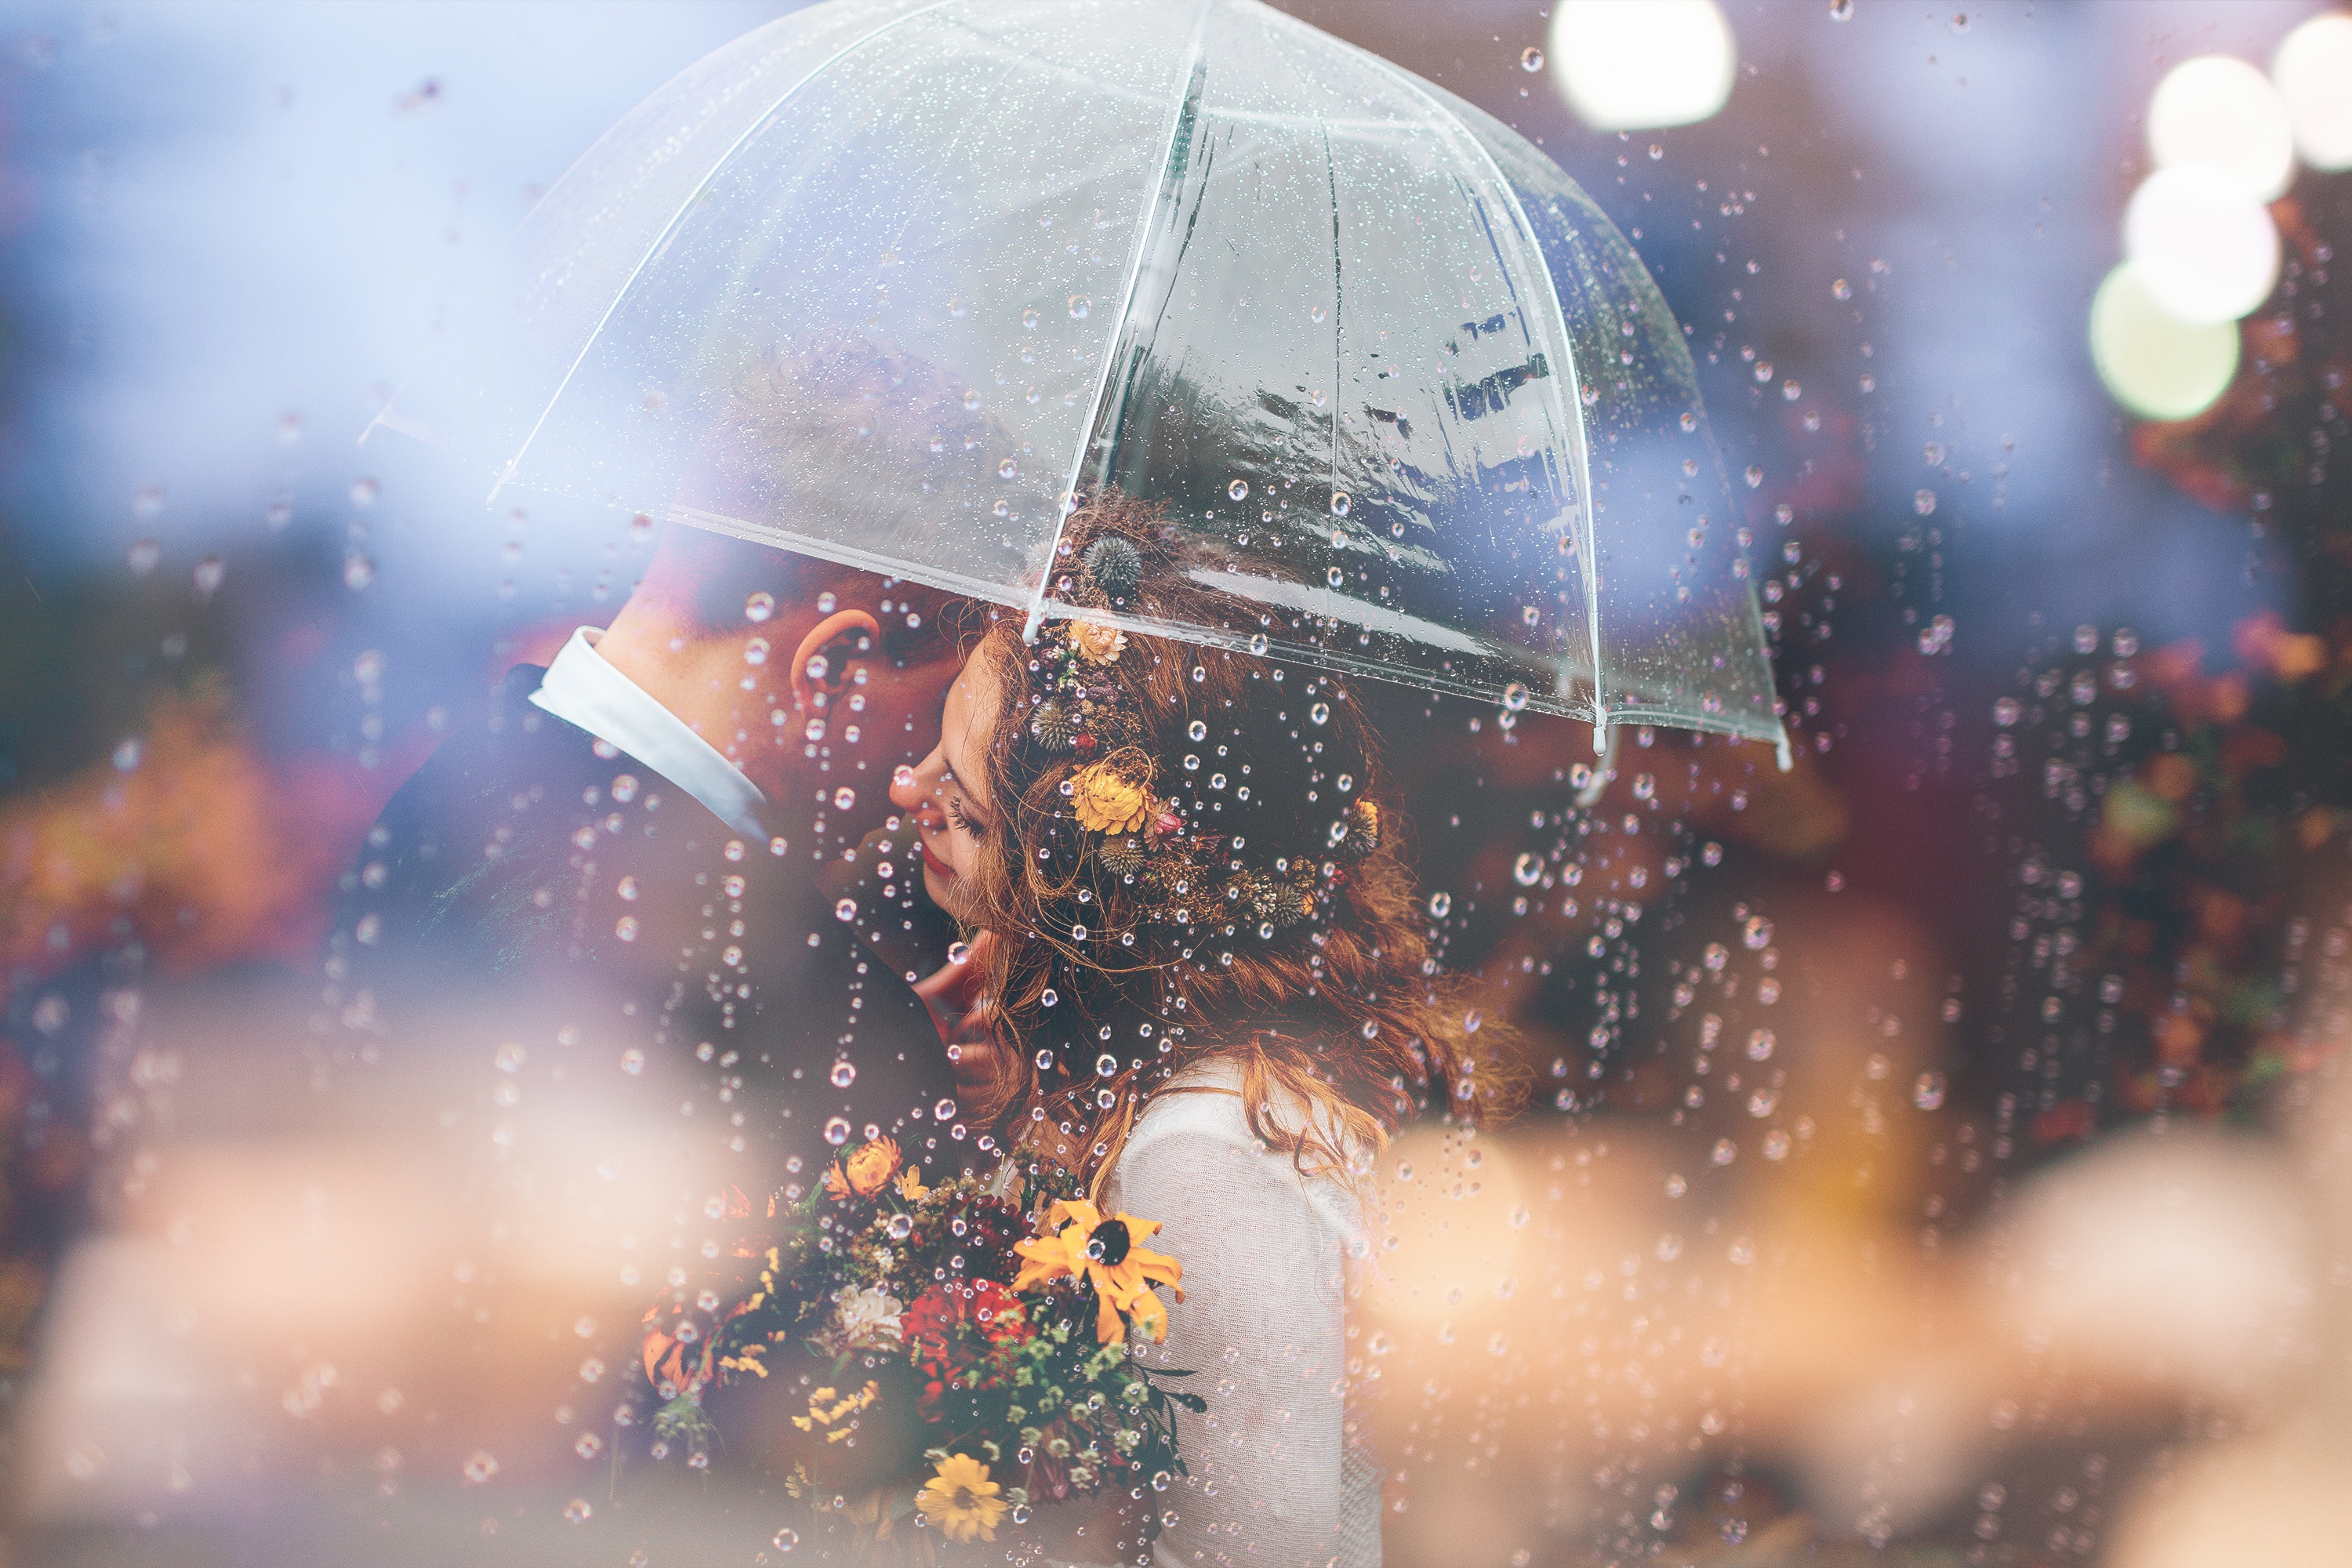 Married Couple Romantic Umbrella Raining Weeding, HD Love